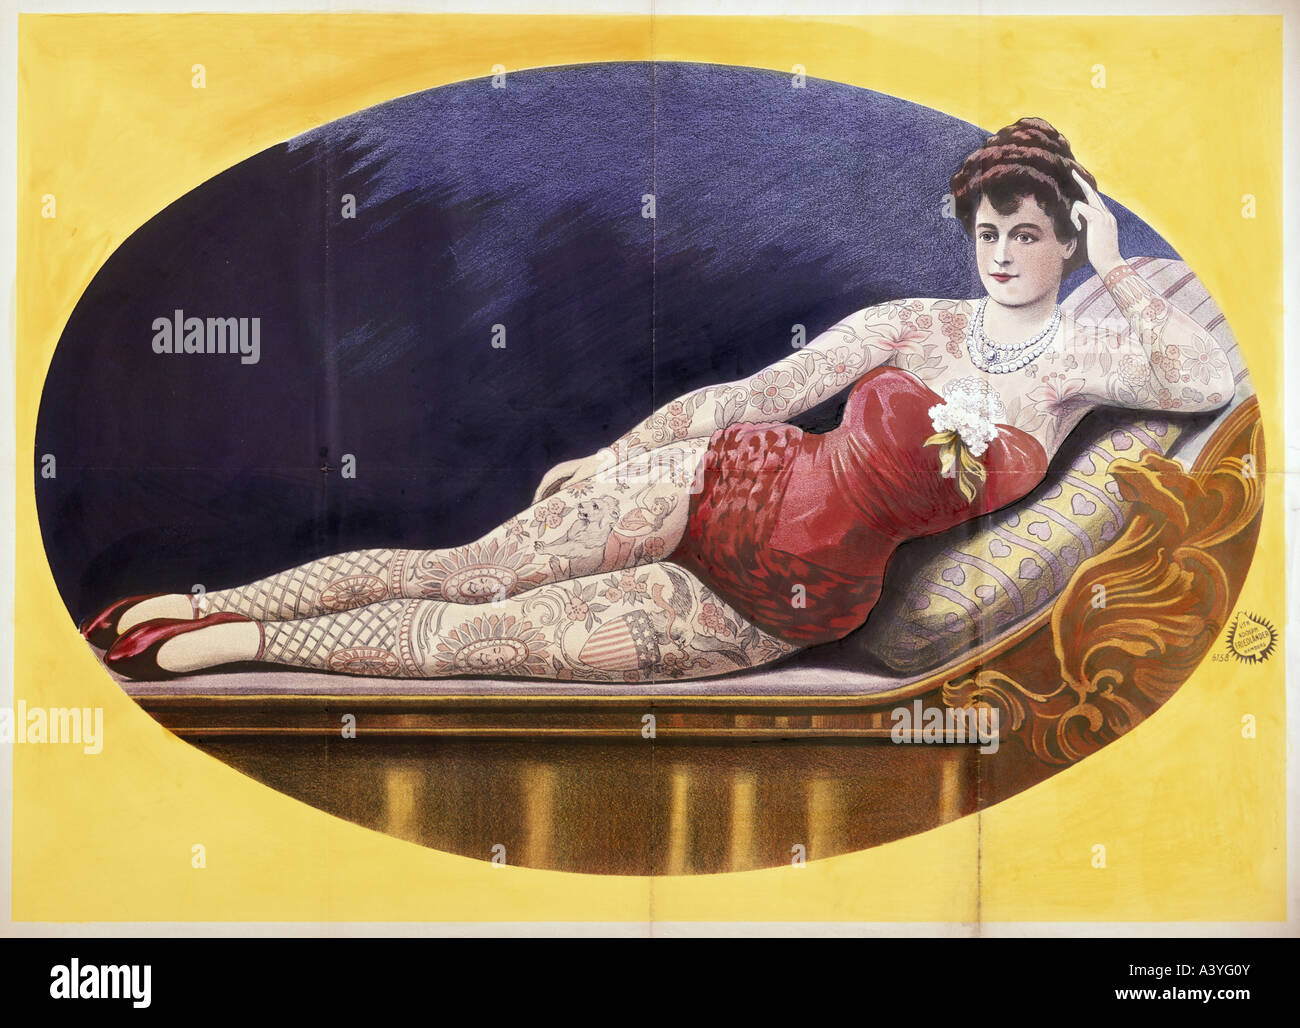 festivity, fairs, carny, completely tattooed woman, poster, colour lithograph, print by Adolph Friedländer, - Stock Image